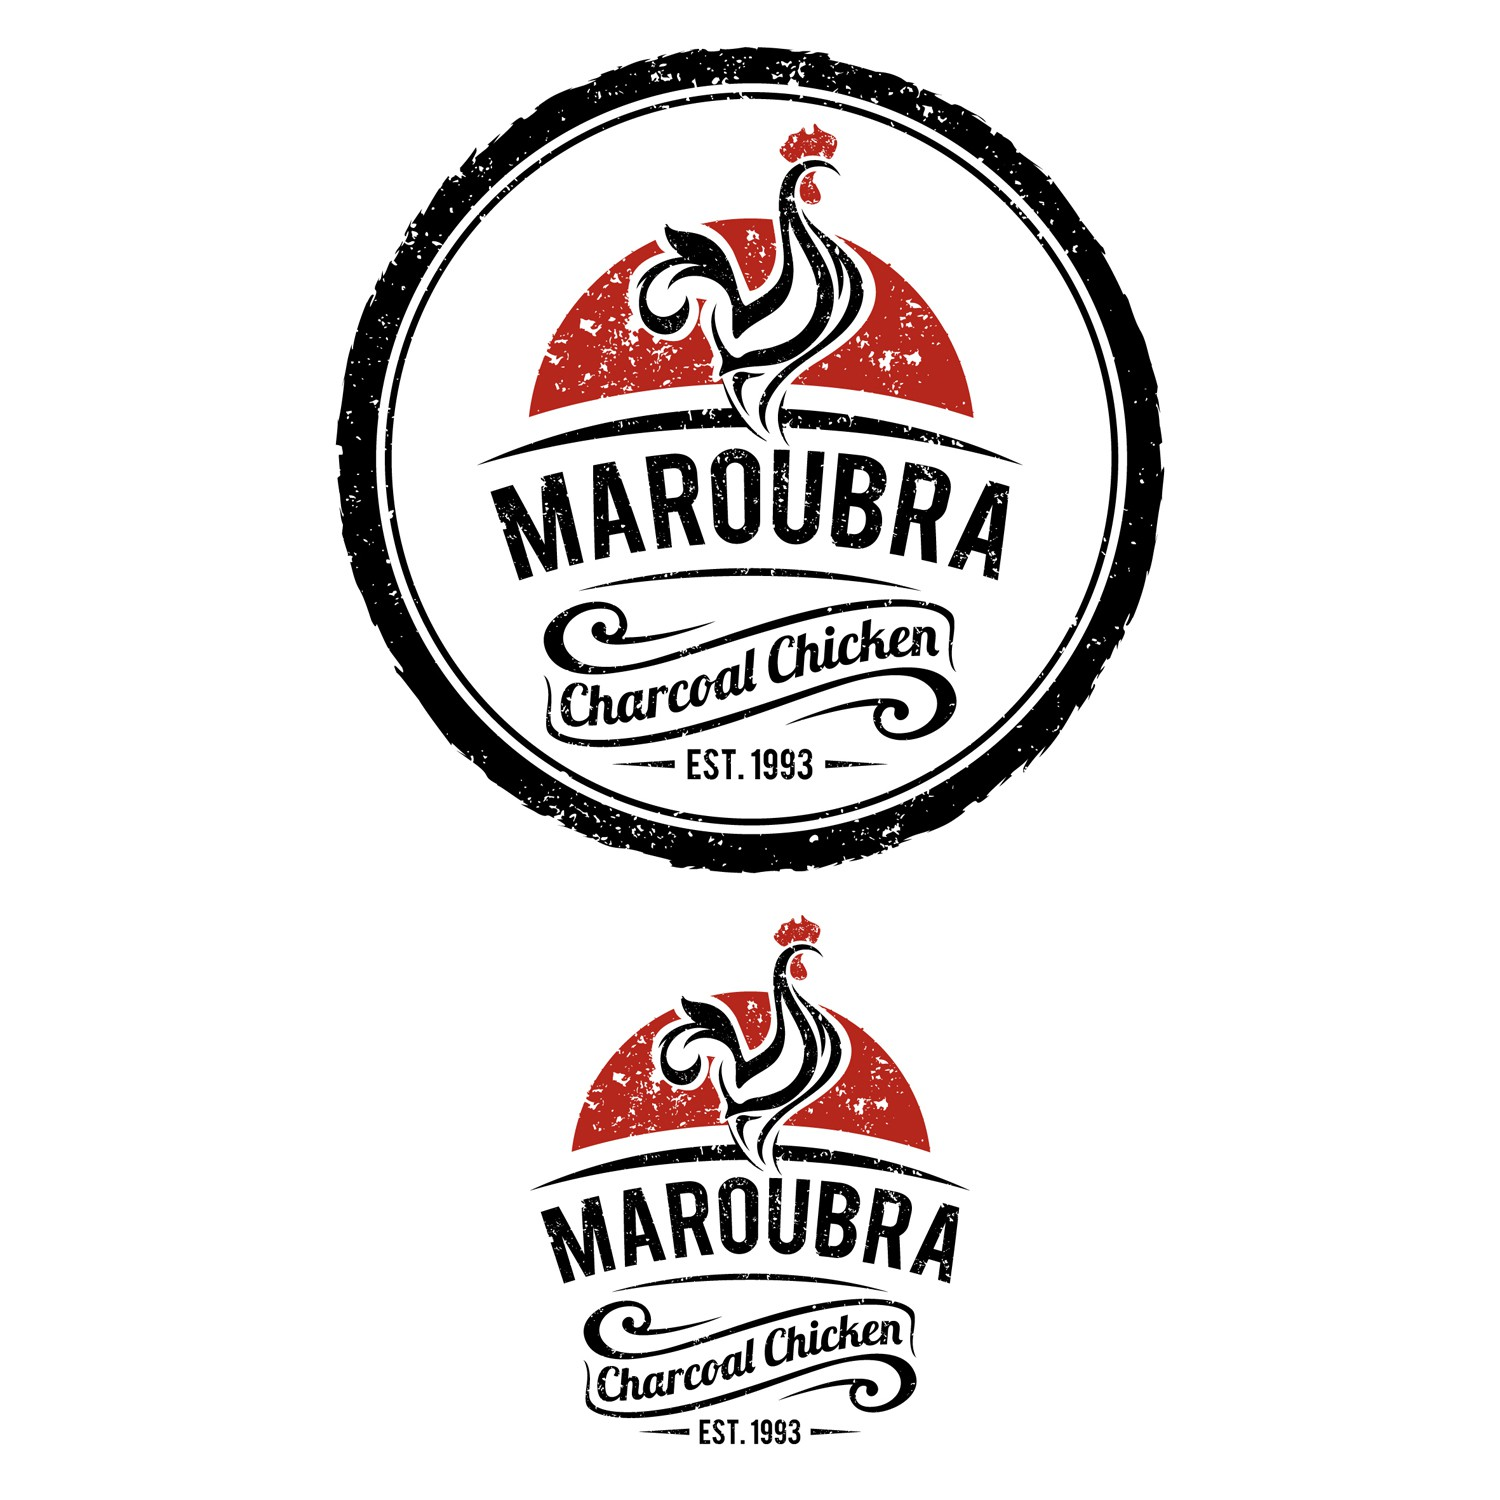 New logo wanted for Maroubra Charcoal Chicken